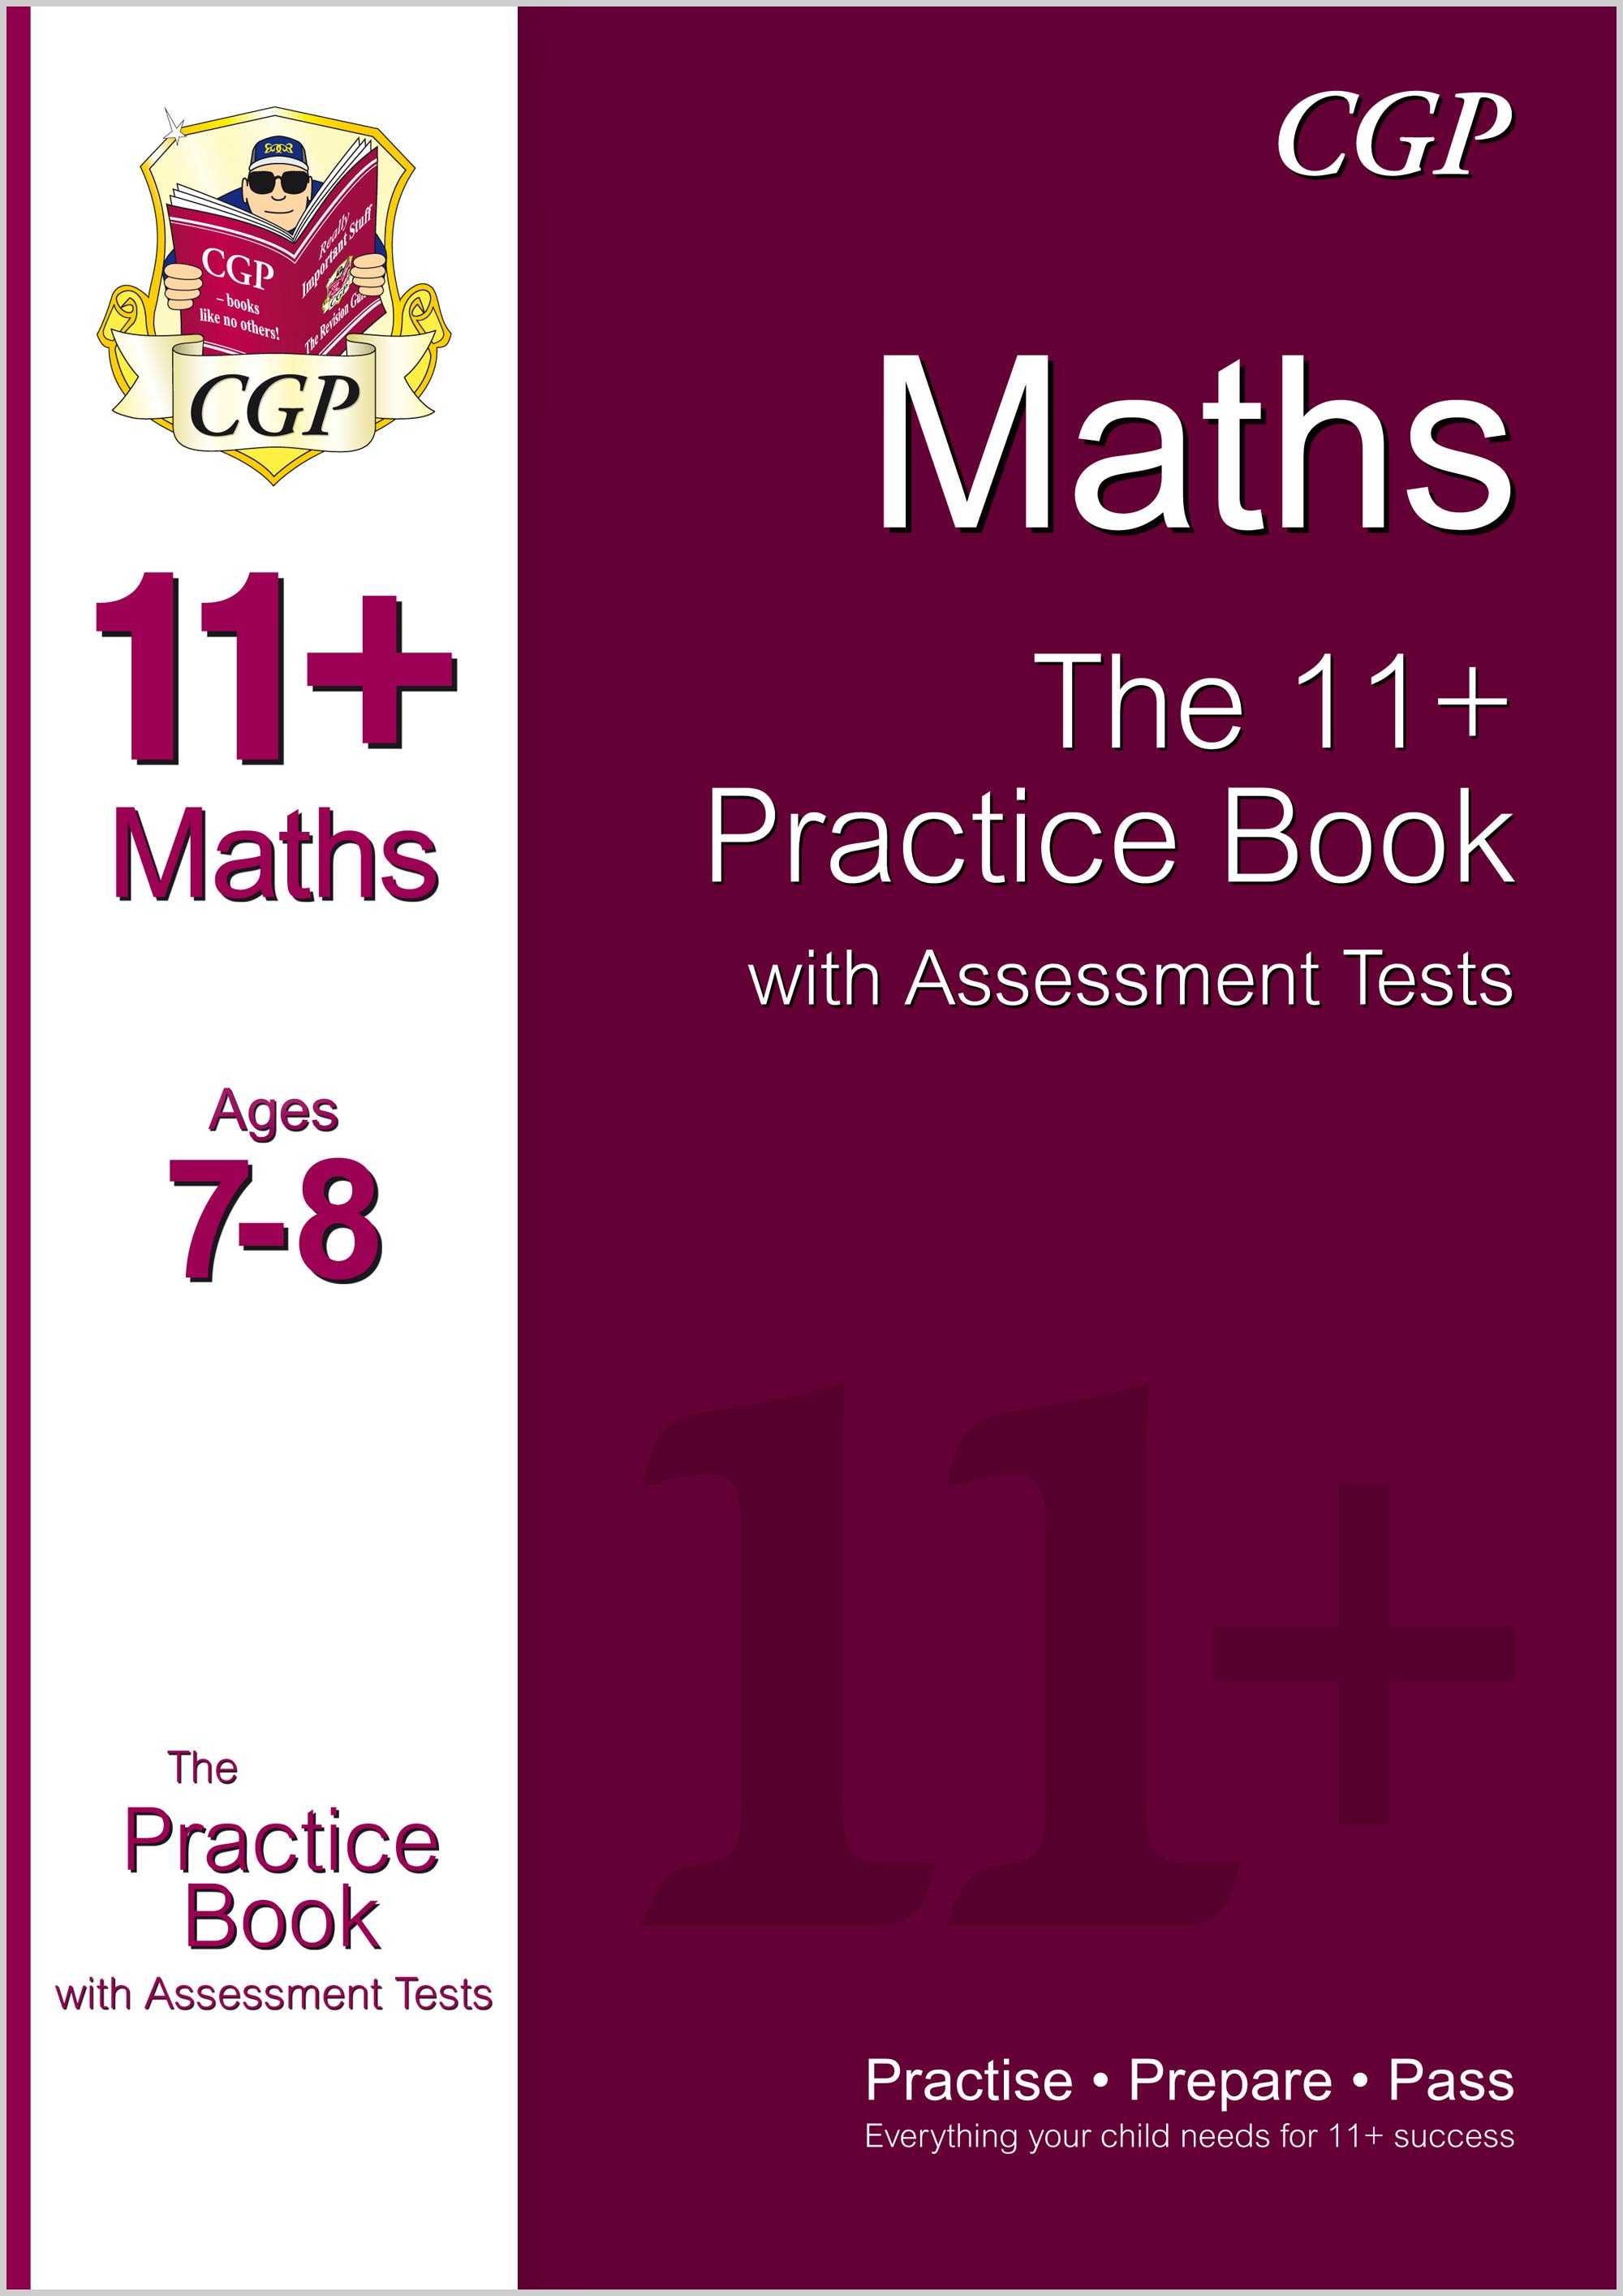 M3QE1 - 11+ Maths Practice Book with Assessment Tests Ages 7-8 (for GL & Other Test Providers)